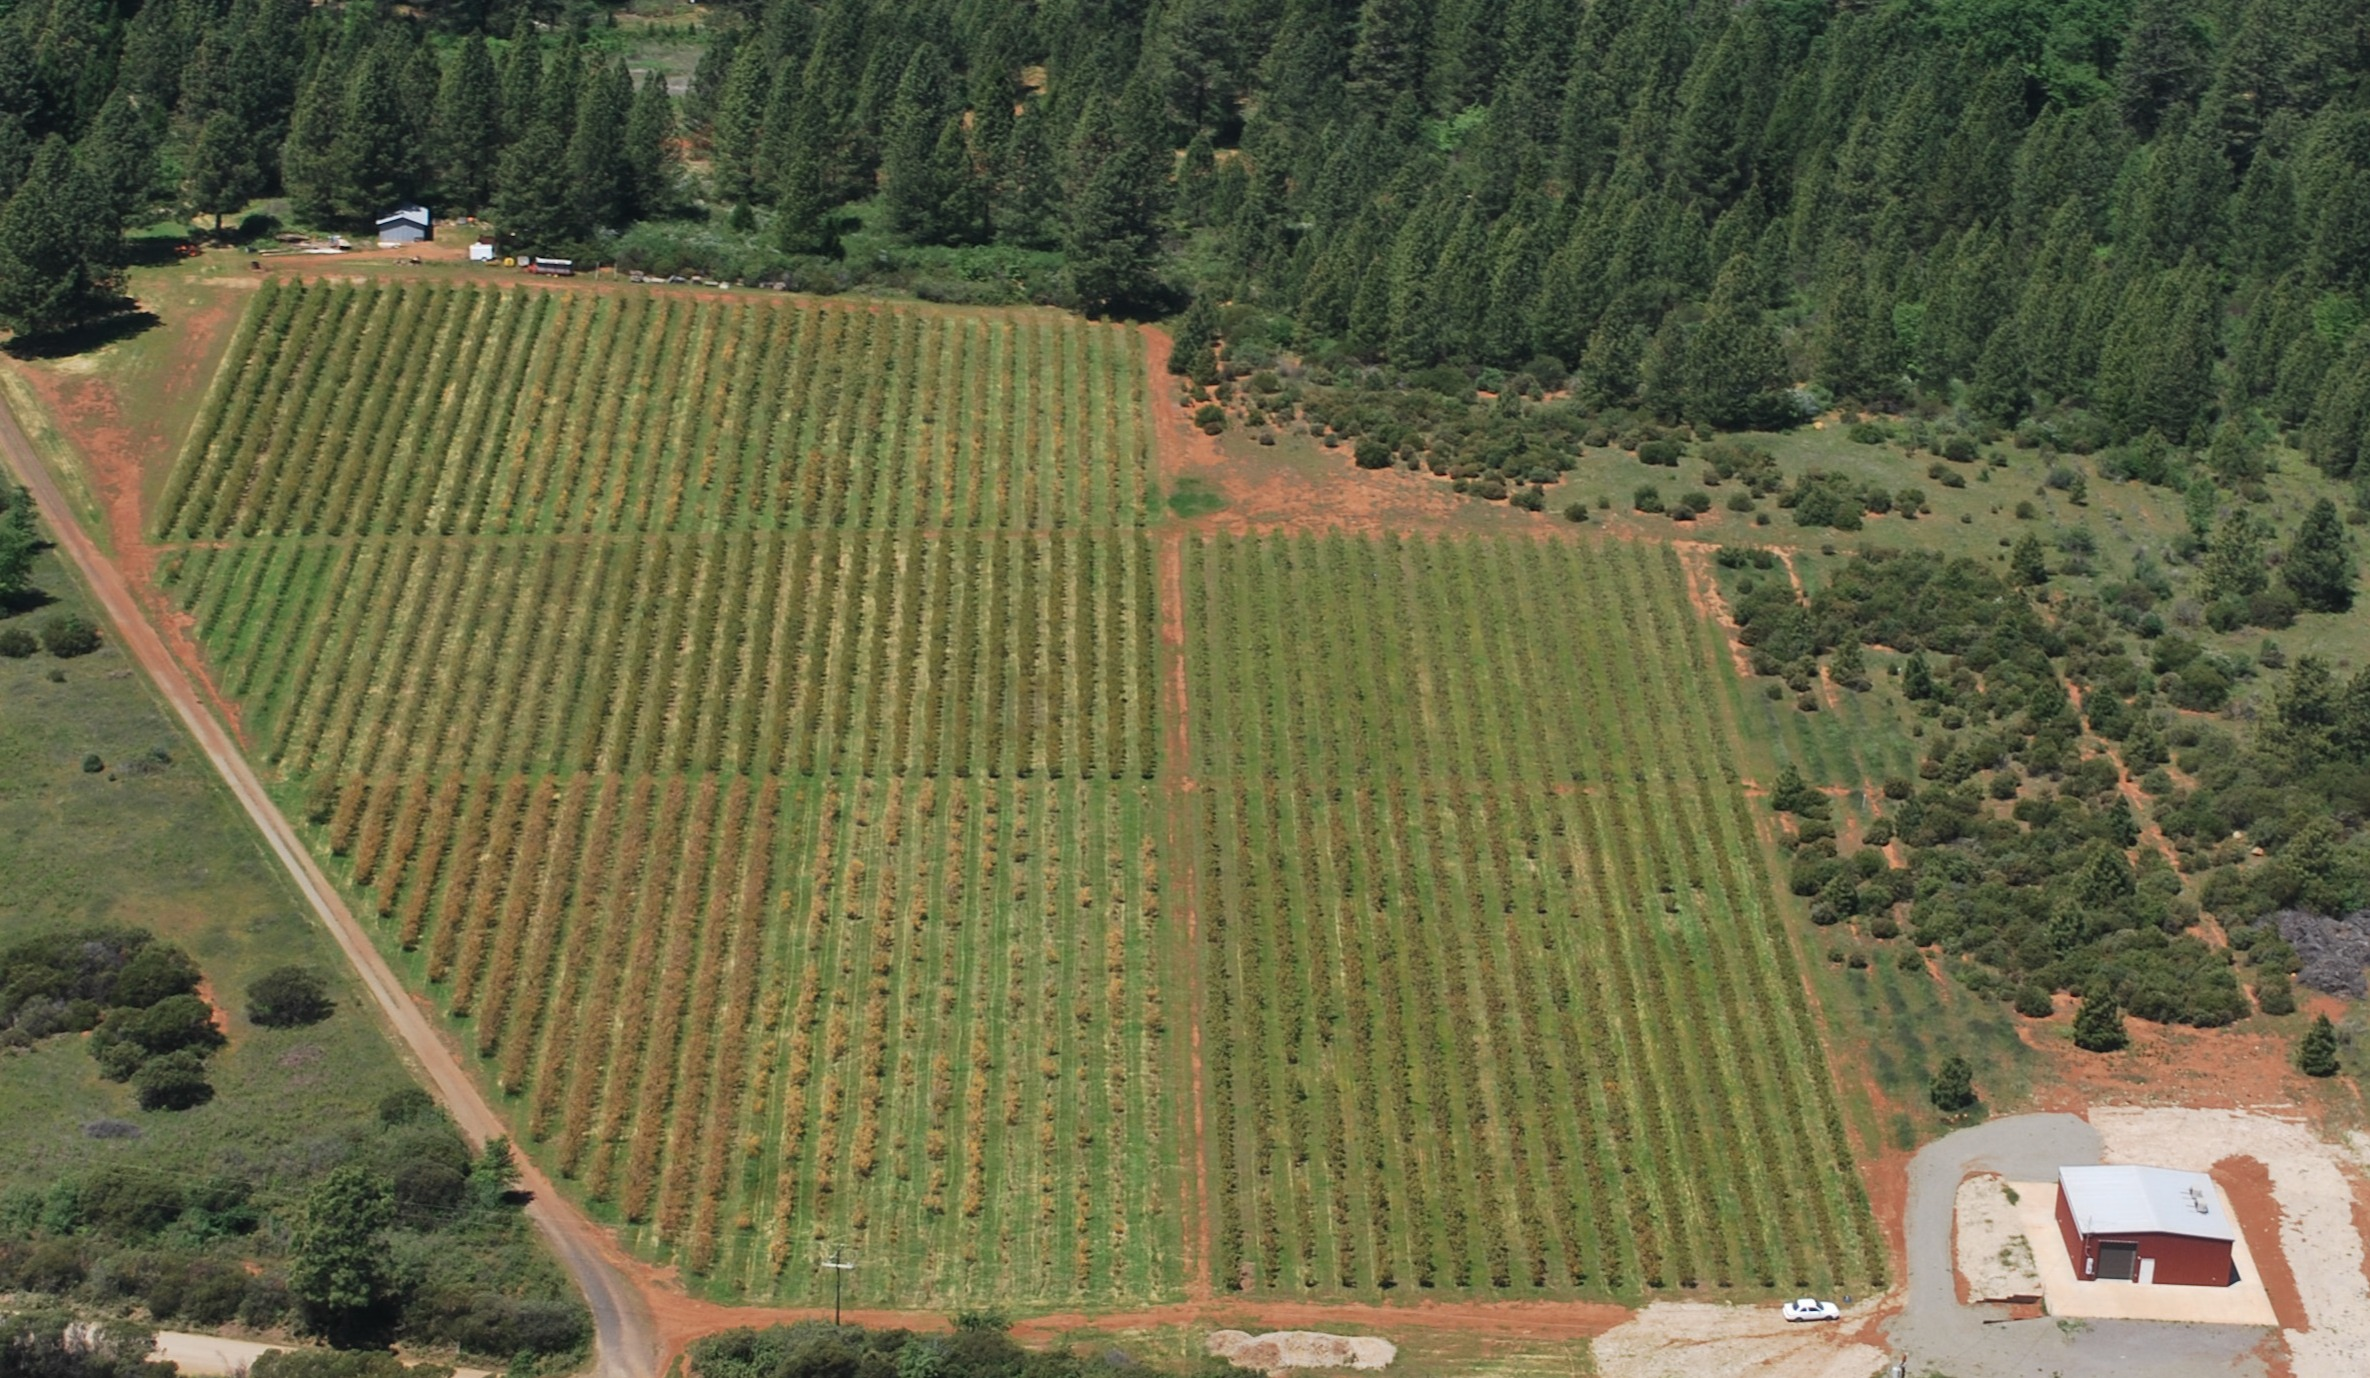 Bird's Eye View Sierra Cascade Blueberry Farm. Uploaded by Sierra Cascade Blueberry Farm